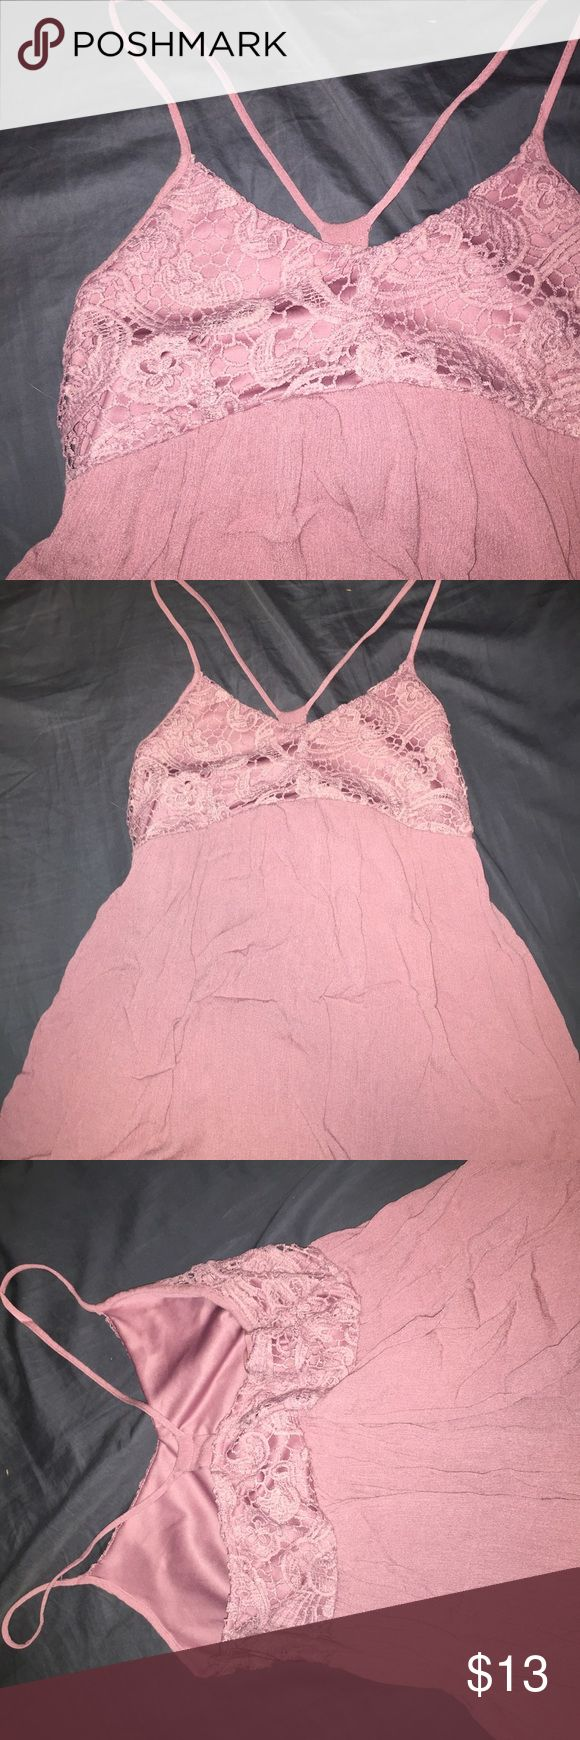 Charlotte Ruuse Sundress This is a very flowy dress! More of a purple pink. Hardly worn, and has zipper on the side. Send me an offer. Charlotte Russe Dresses Mini